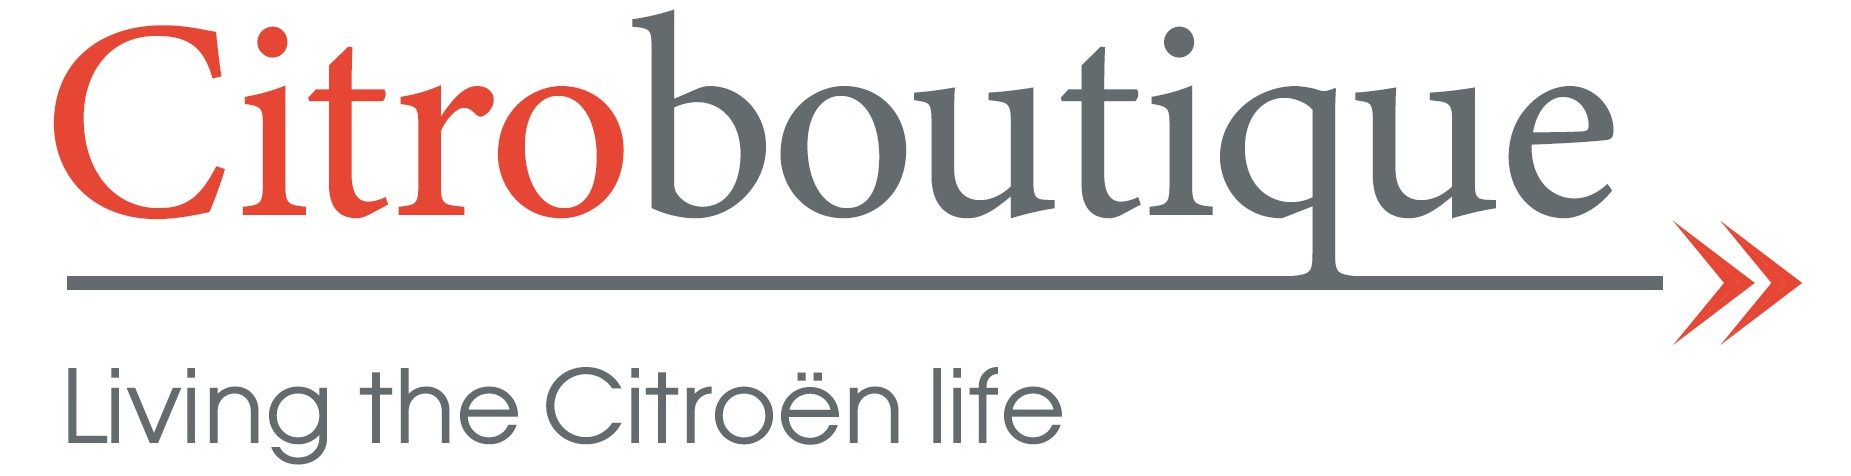 Citroboutique.com